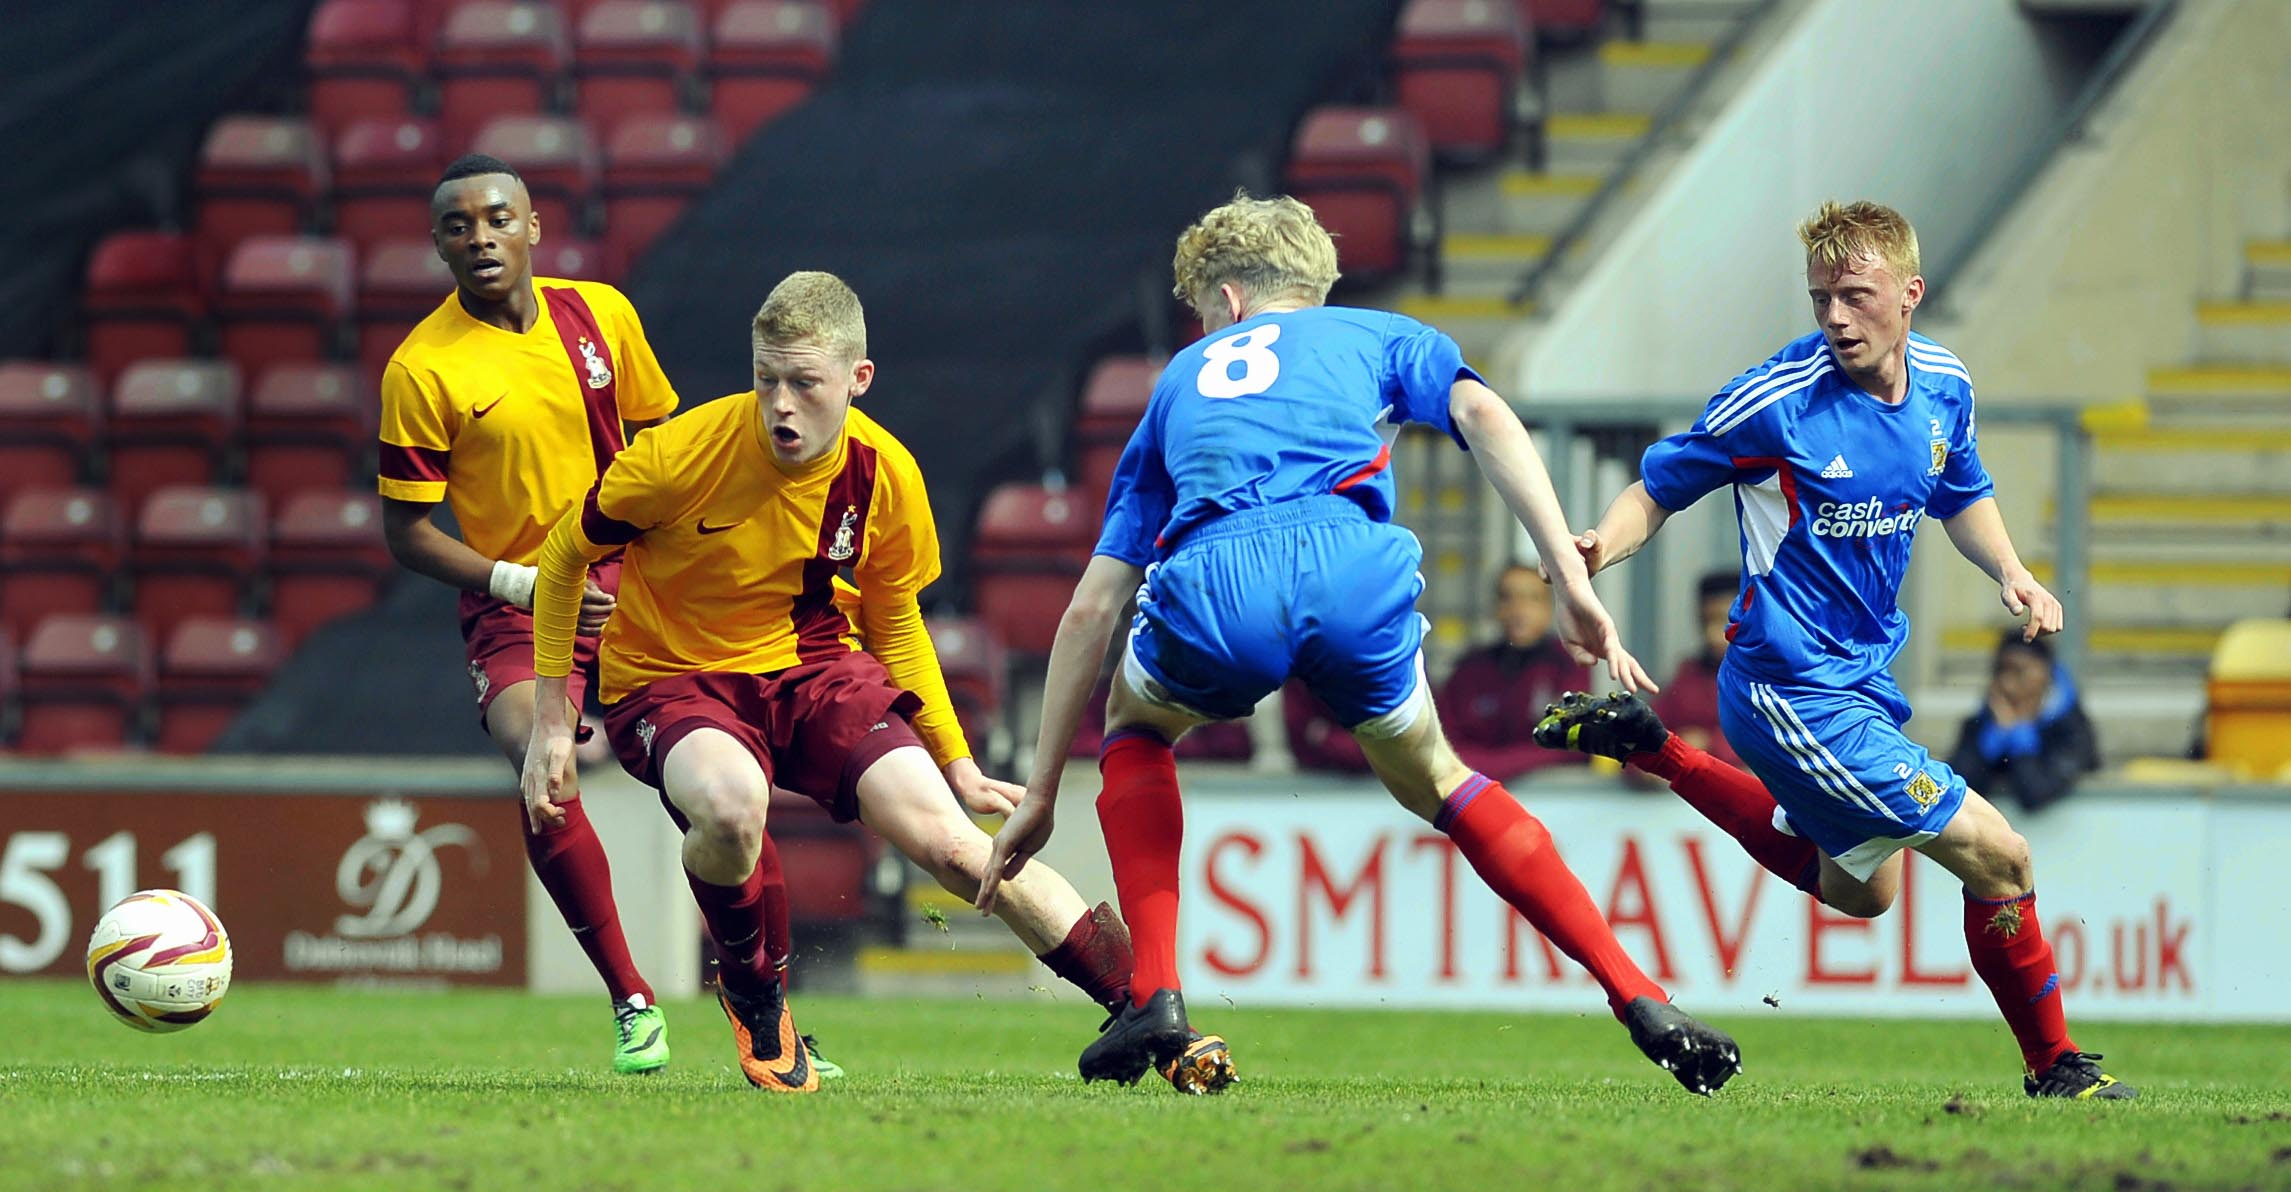 Bradford City youth team: player profiles